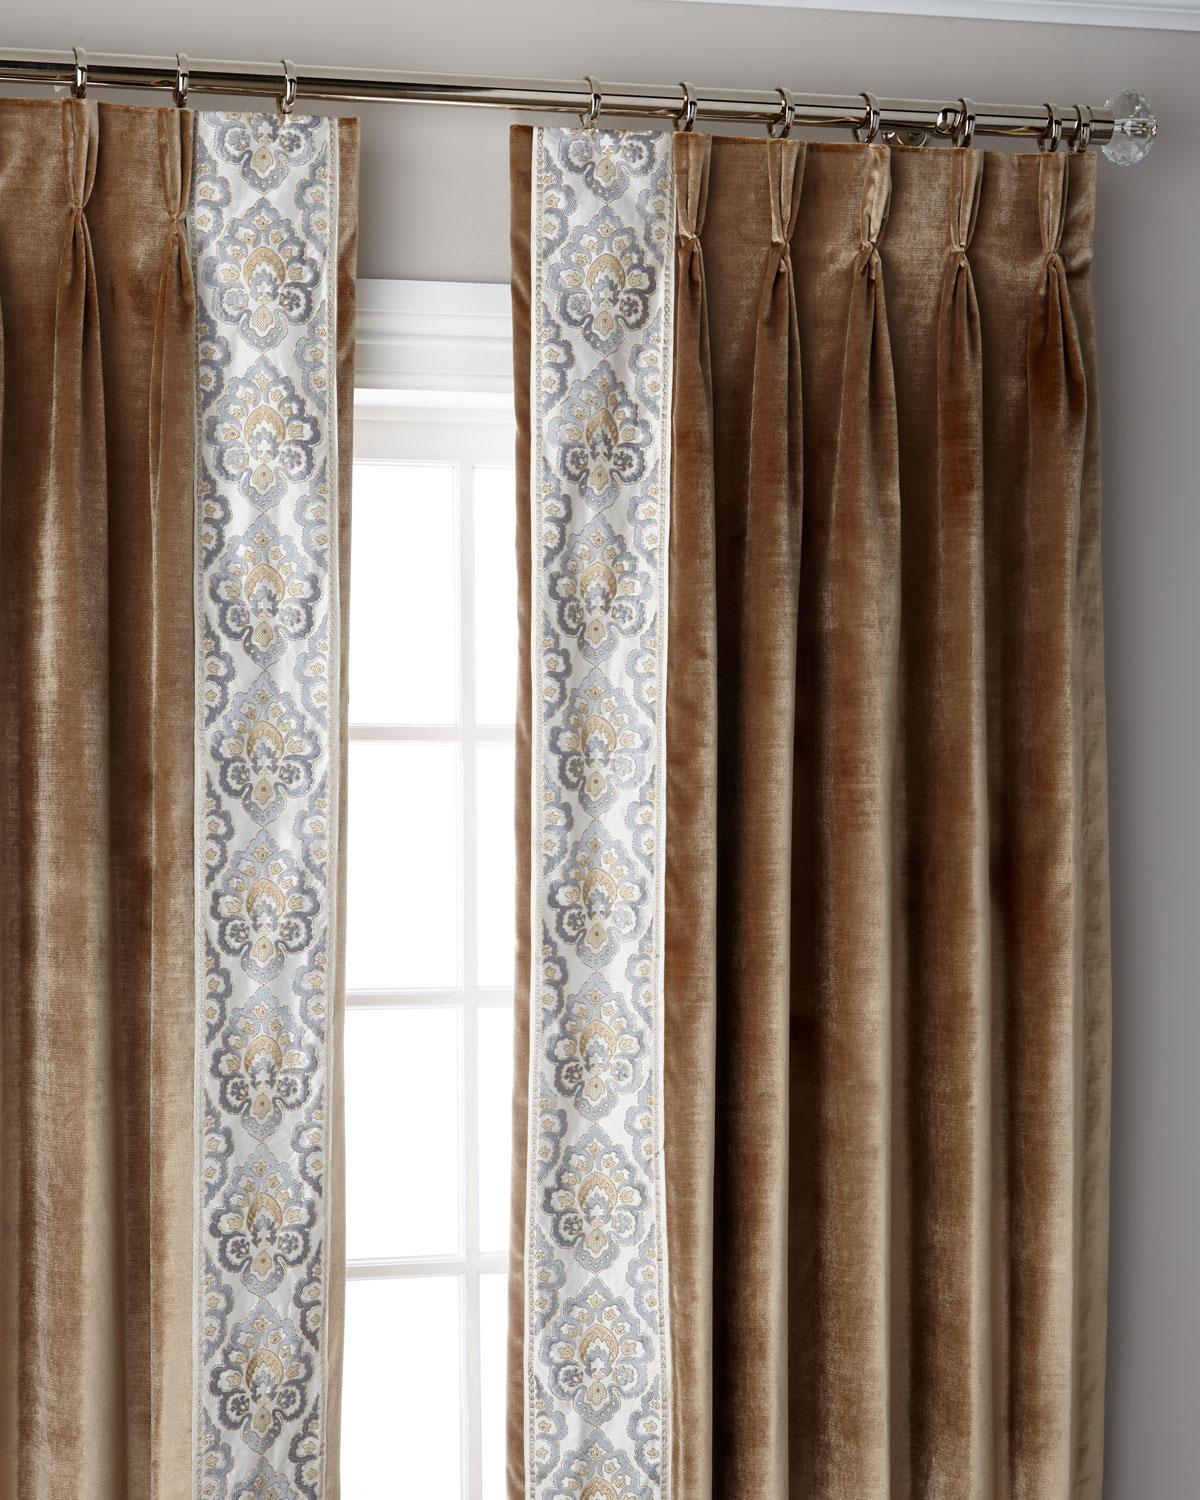 Caramel Provence 3 Fold Pinch Pleat Blackout Curtain Panel 108